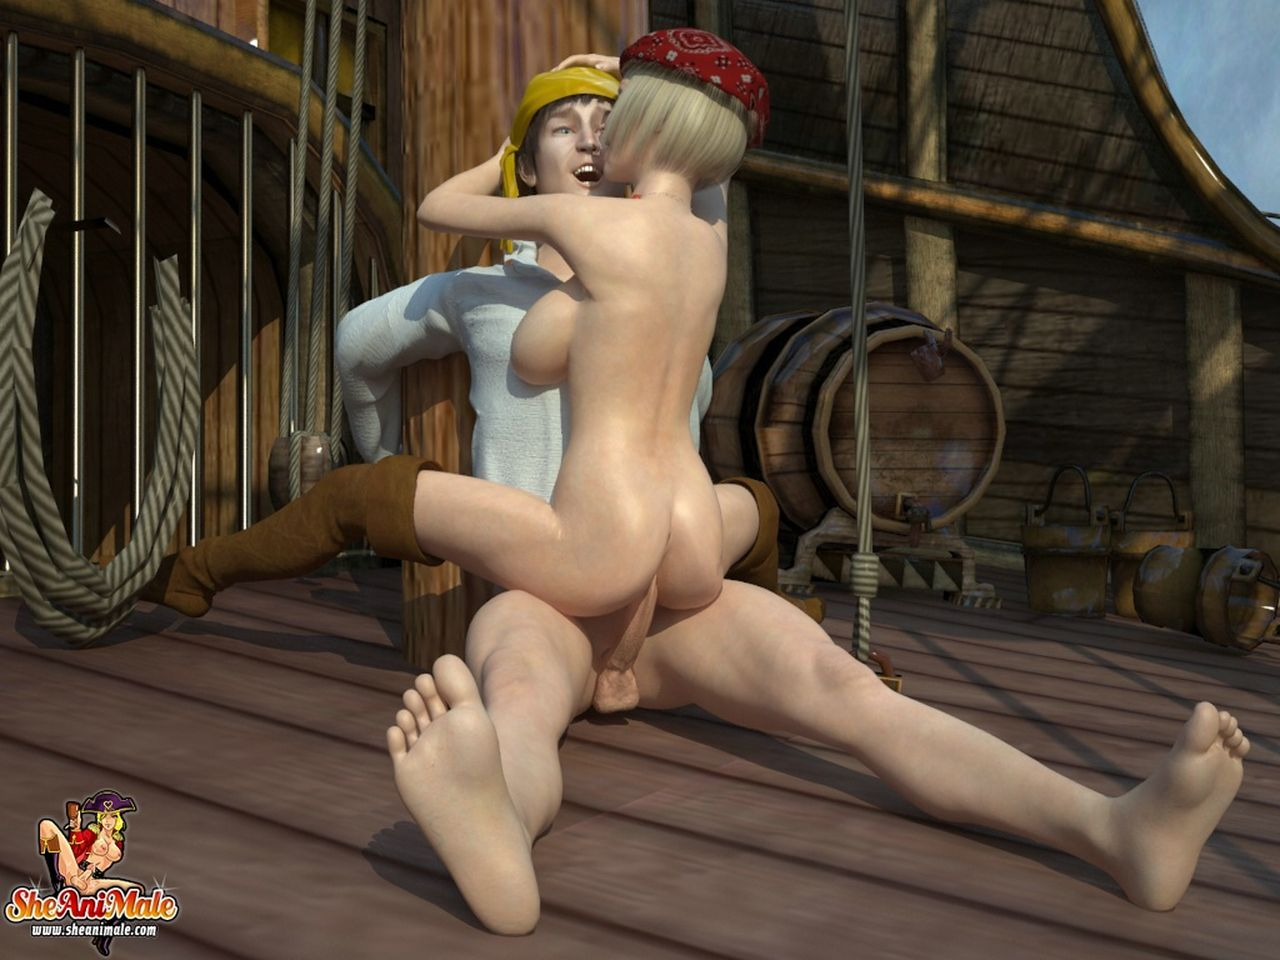 Pirates girl cartoon porn pic naked image